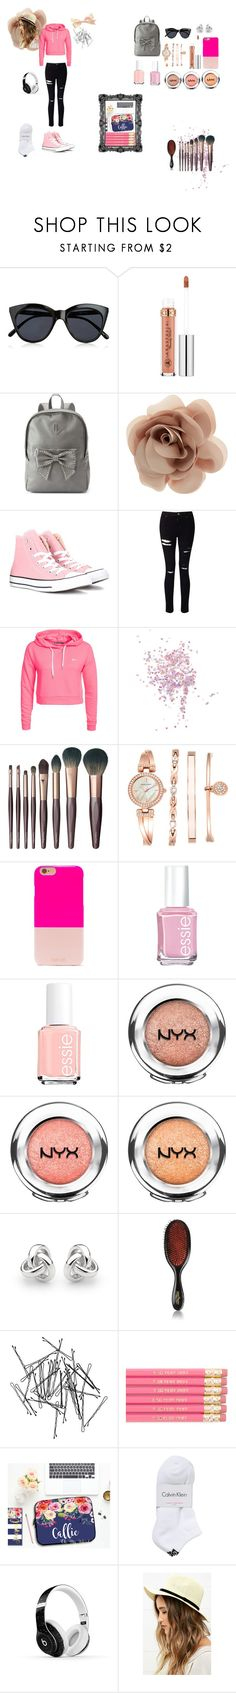 """""""Back to school"""" by ashlee-03 ❤ liked on Polyvore featuring Le Specs, Anastasia Beverly Hills, Candie's, Accessorize, Converse, Miss Selfridge, Only Play, Topshop, Charlotte Tilbury and Anne Klein"""